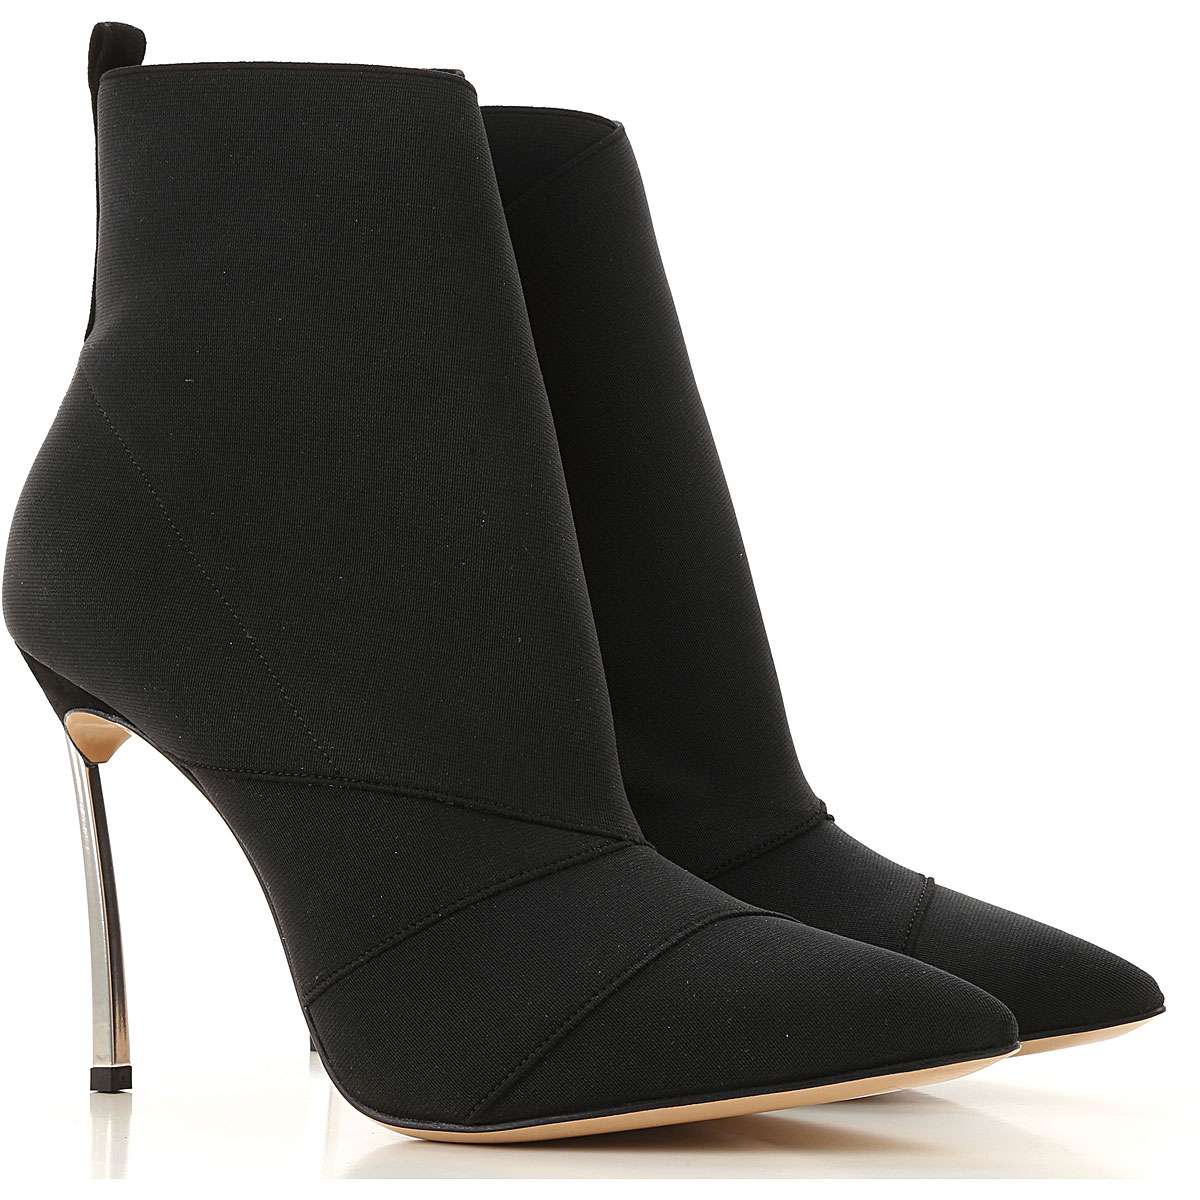 Casadei Boots for Women, Booties On Sale, Black, Elasticized Fabric, 2019, 10 6 6.5 9 9.5